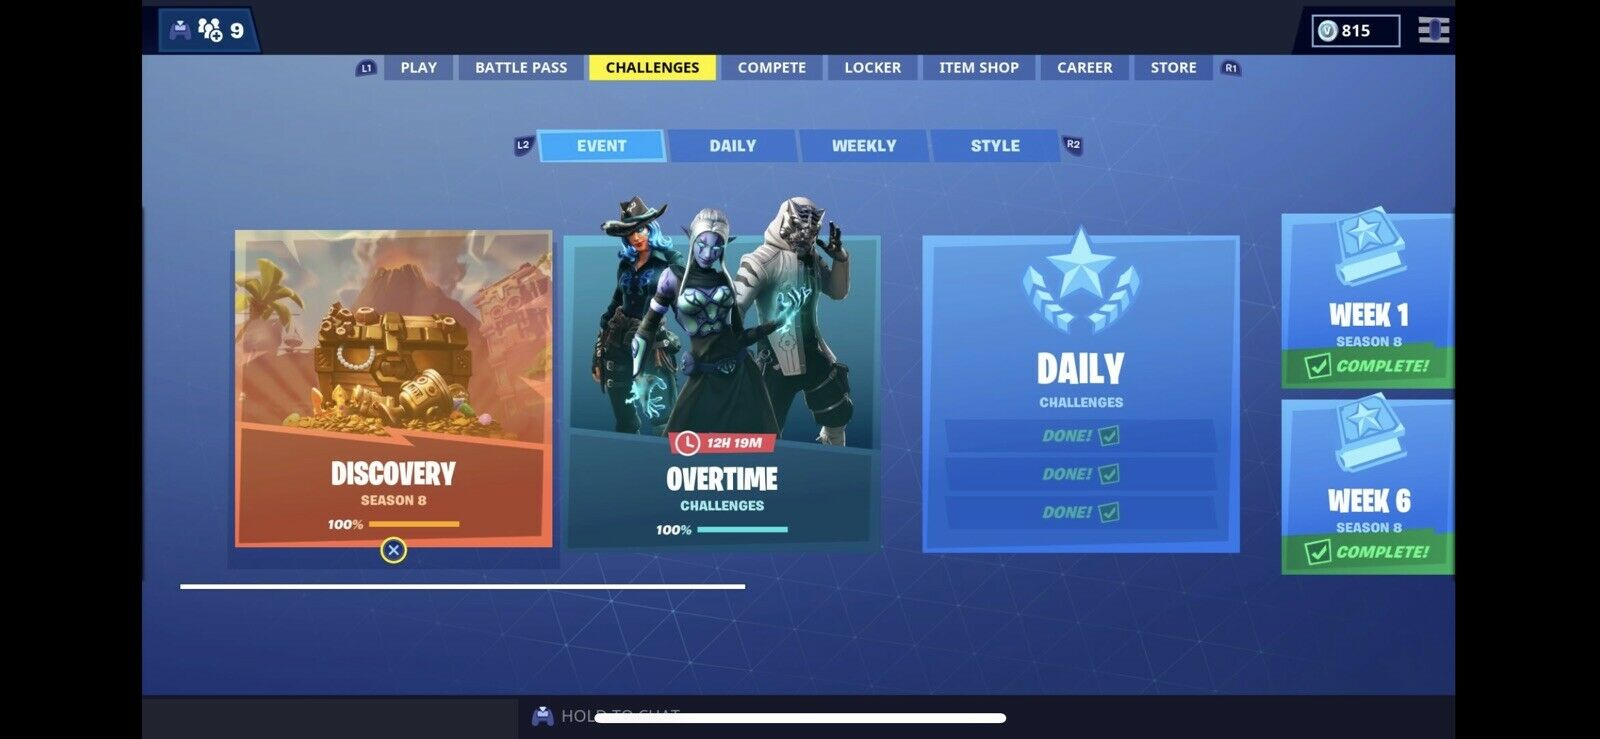 Freevbucks Co fortnite account includes ikonik skin, black knight, , stw